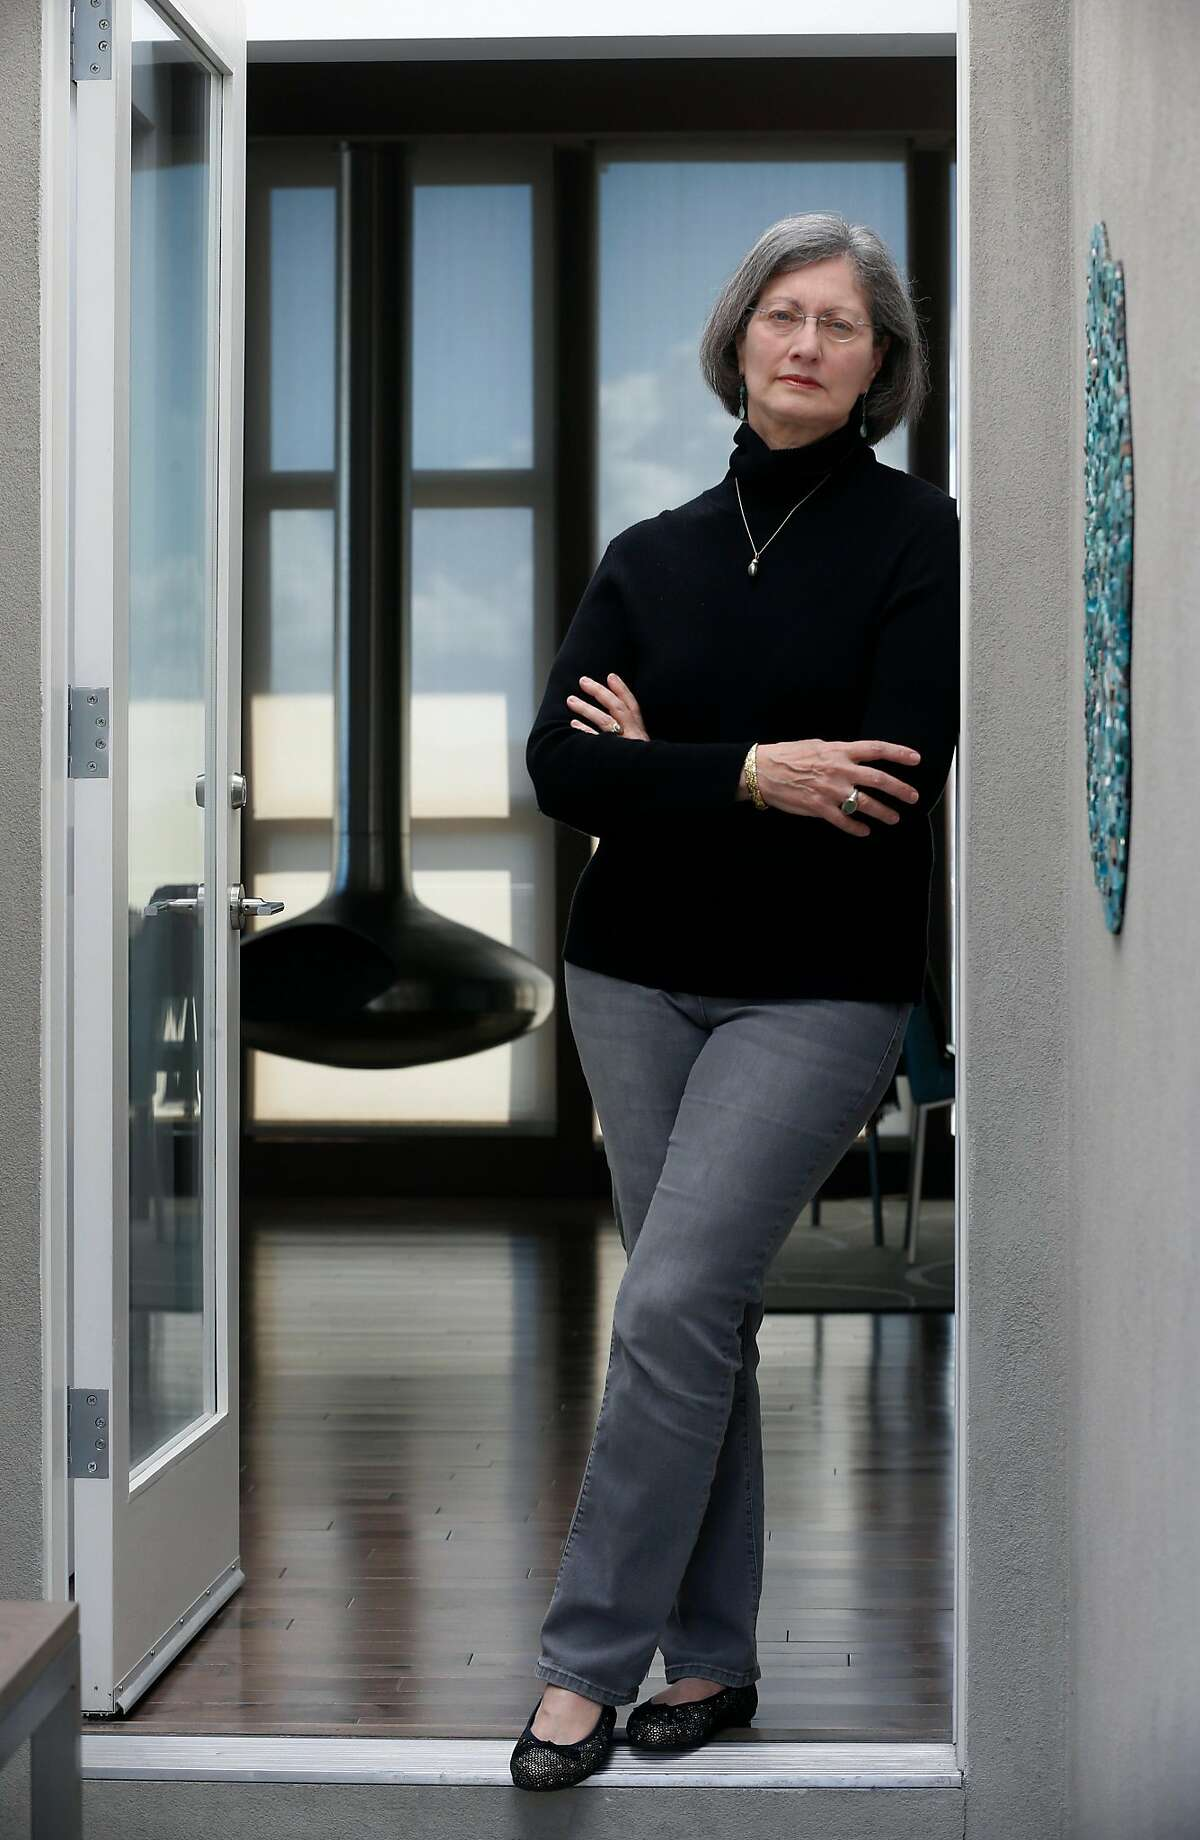 Sonia King is seen at her Sunset District home in San Francisco, Calif. on Thursday, March 26, 2020. King was frustrated after an online grocery delivery order she placed was inexplicably cancelled leaving her food supply low as the coronavirus pandemic continues.